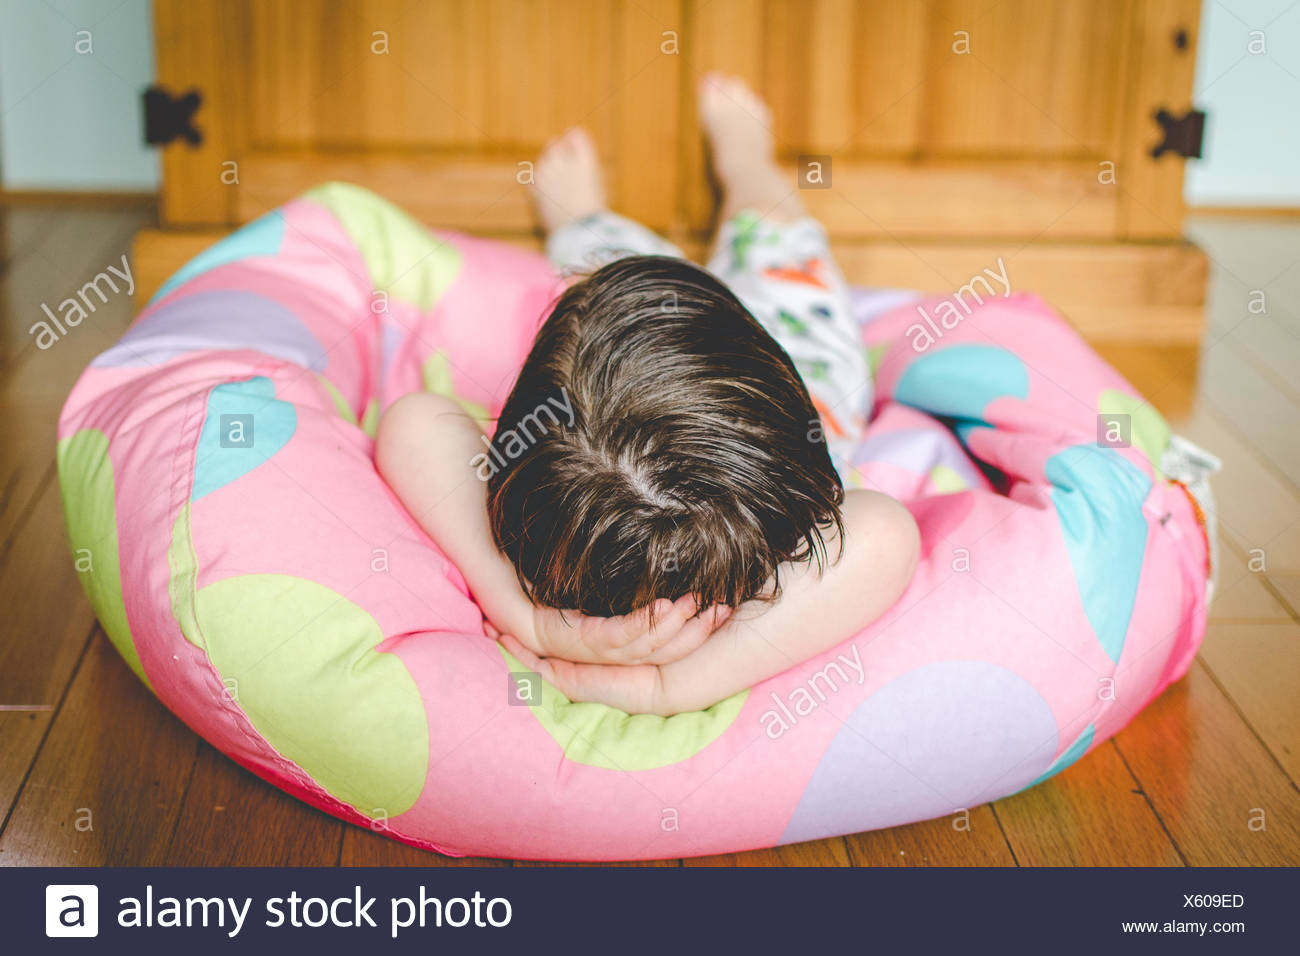 Little boy lying on bean bag chair with hands behind his head - Stock Image